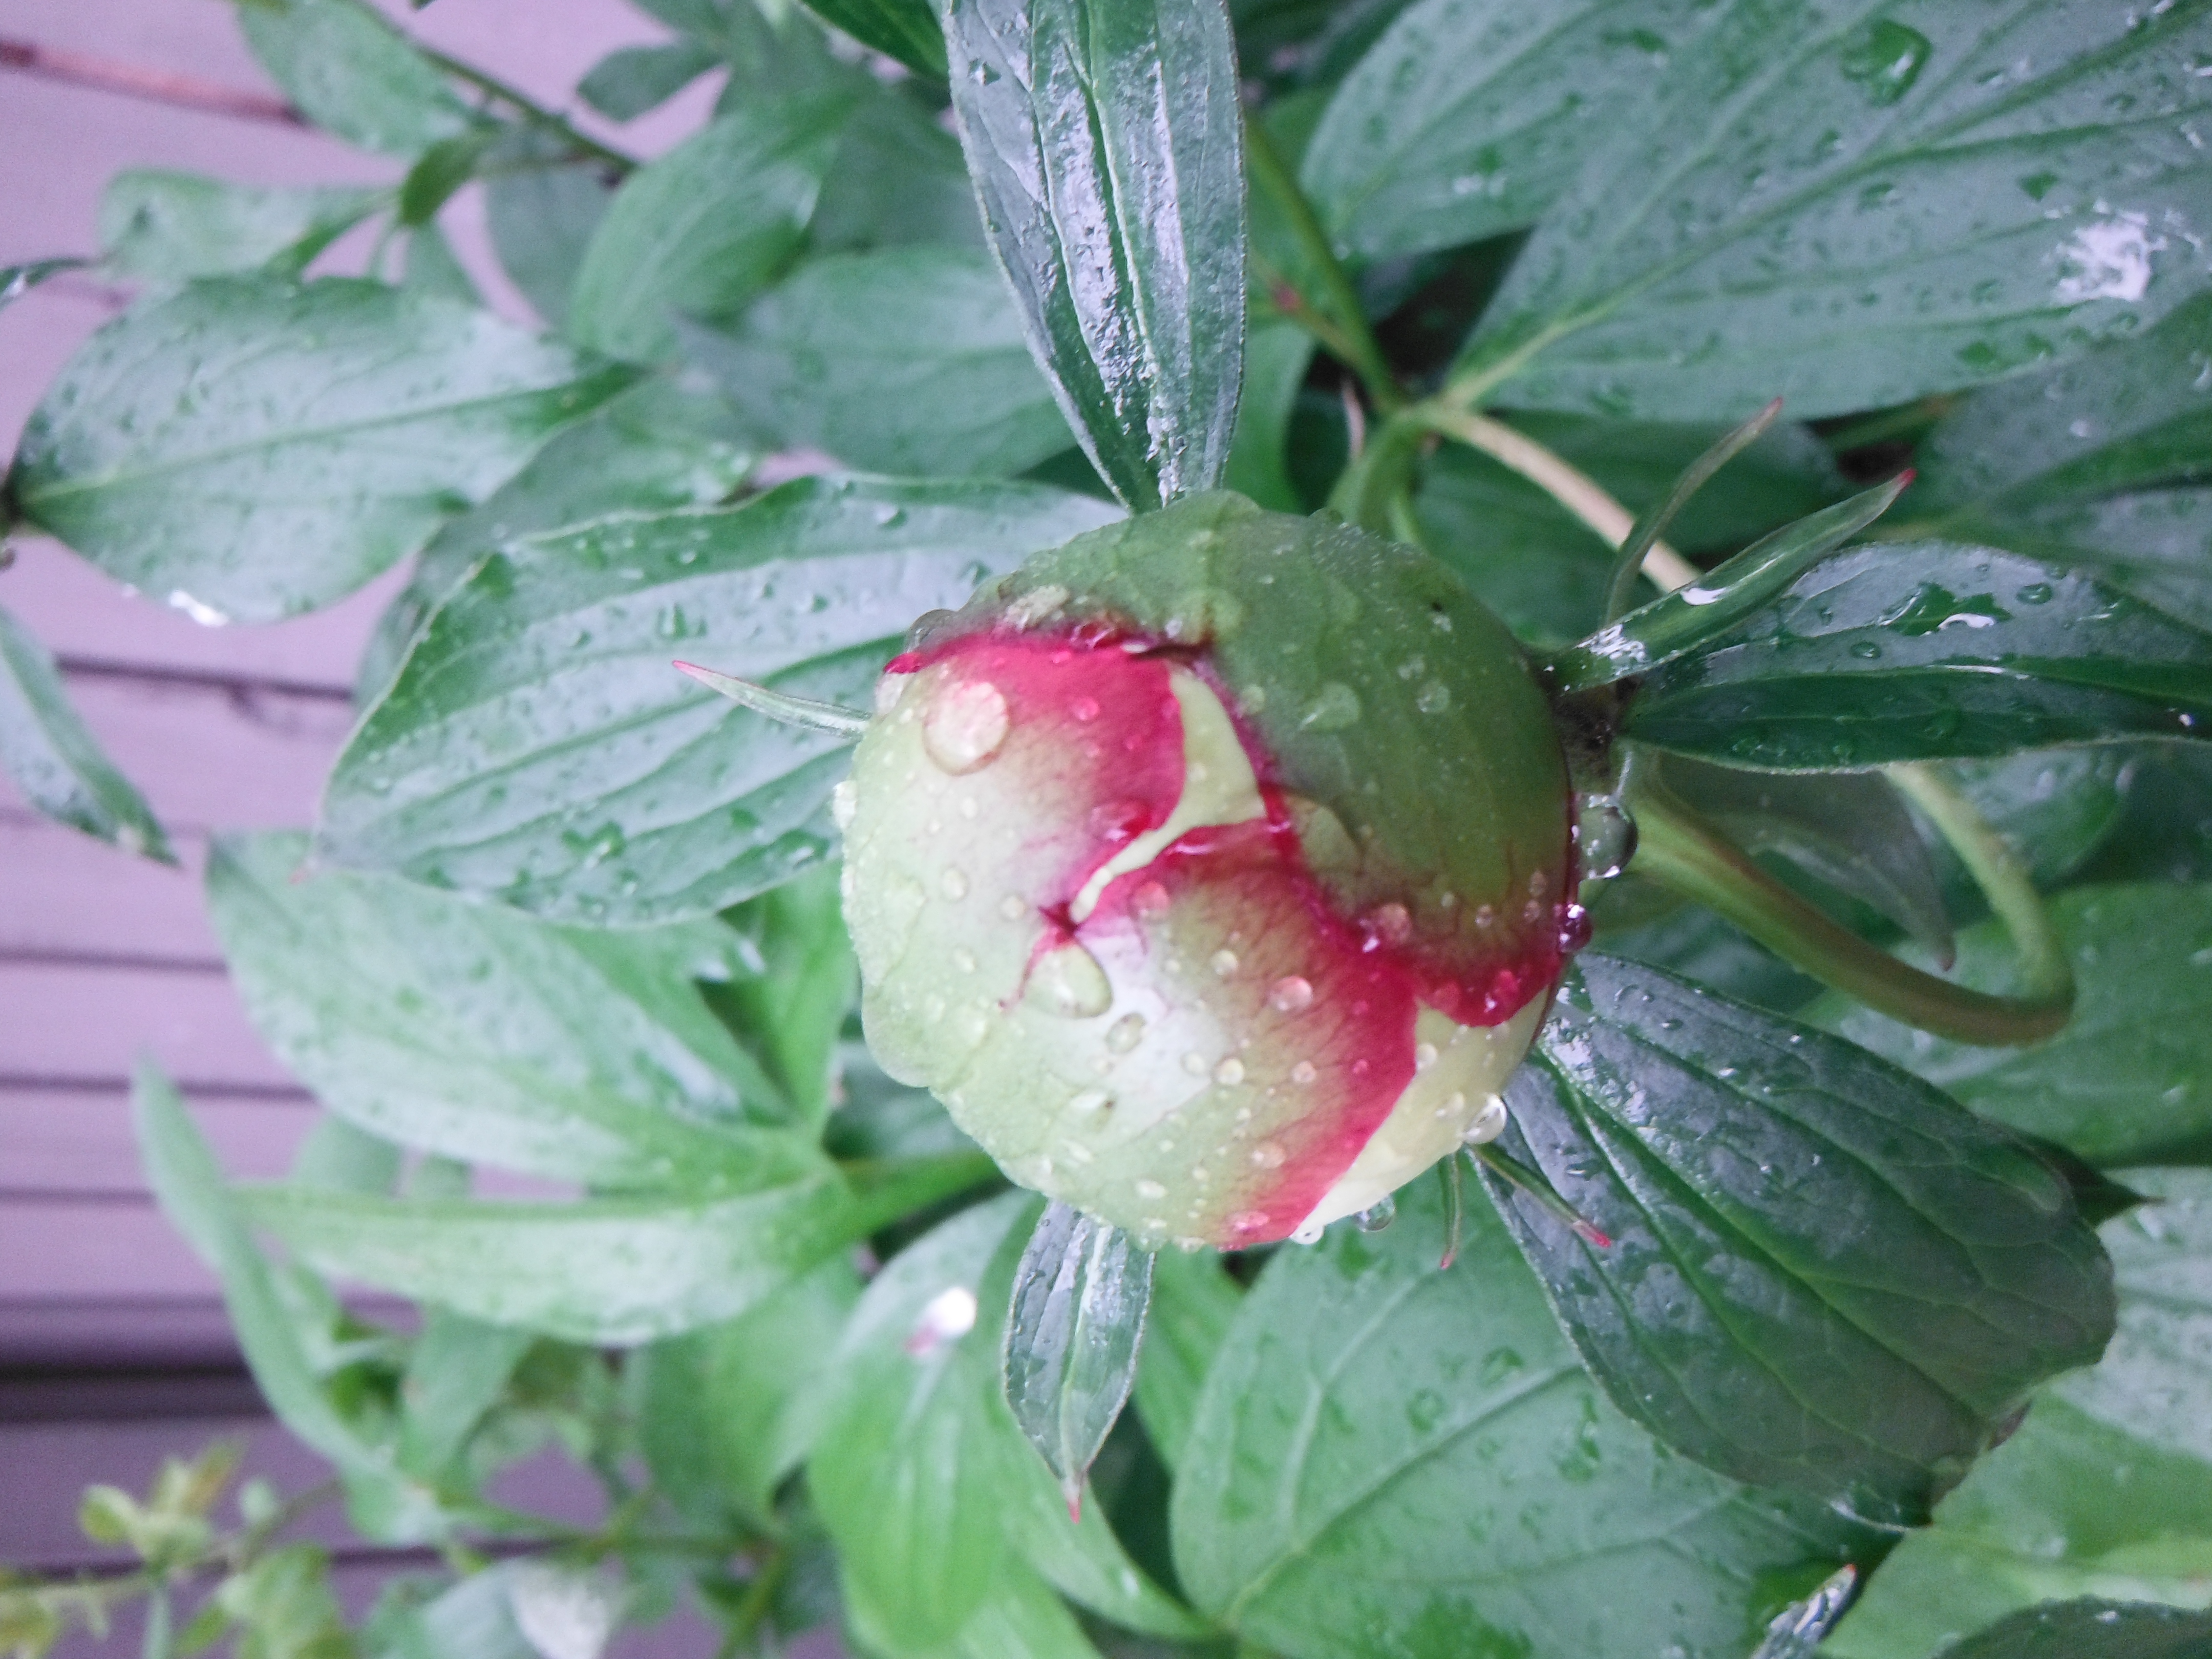 A Peony about to bloom